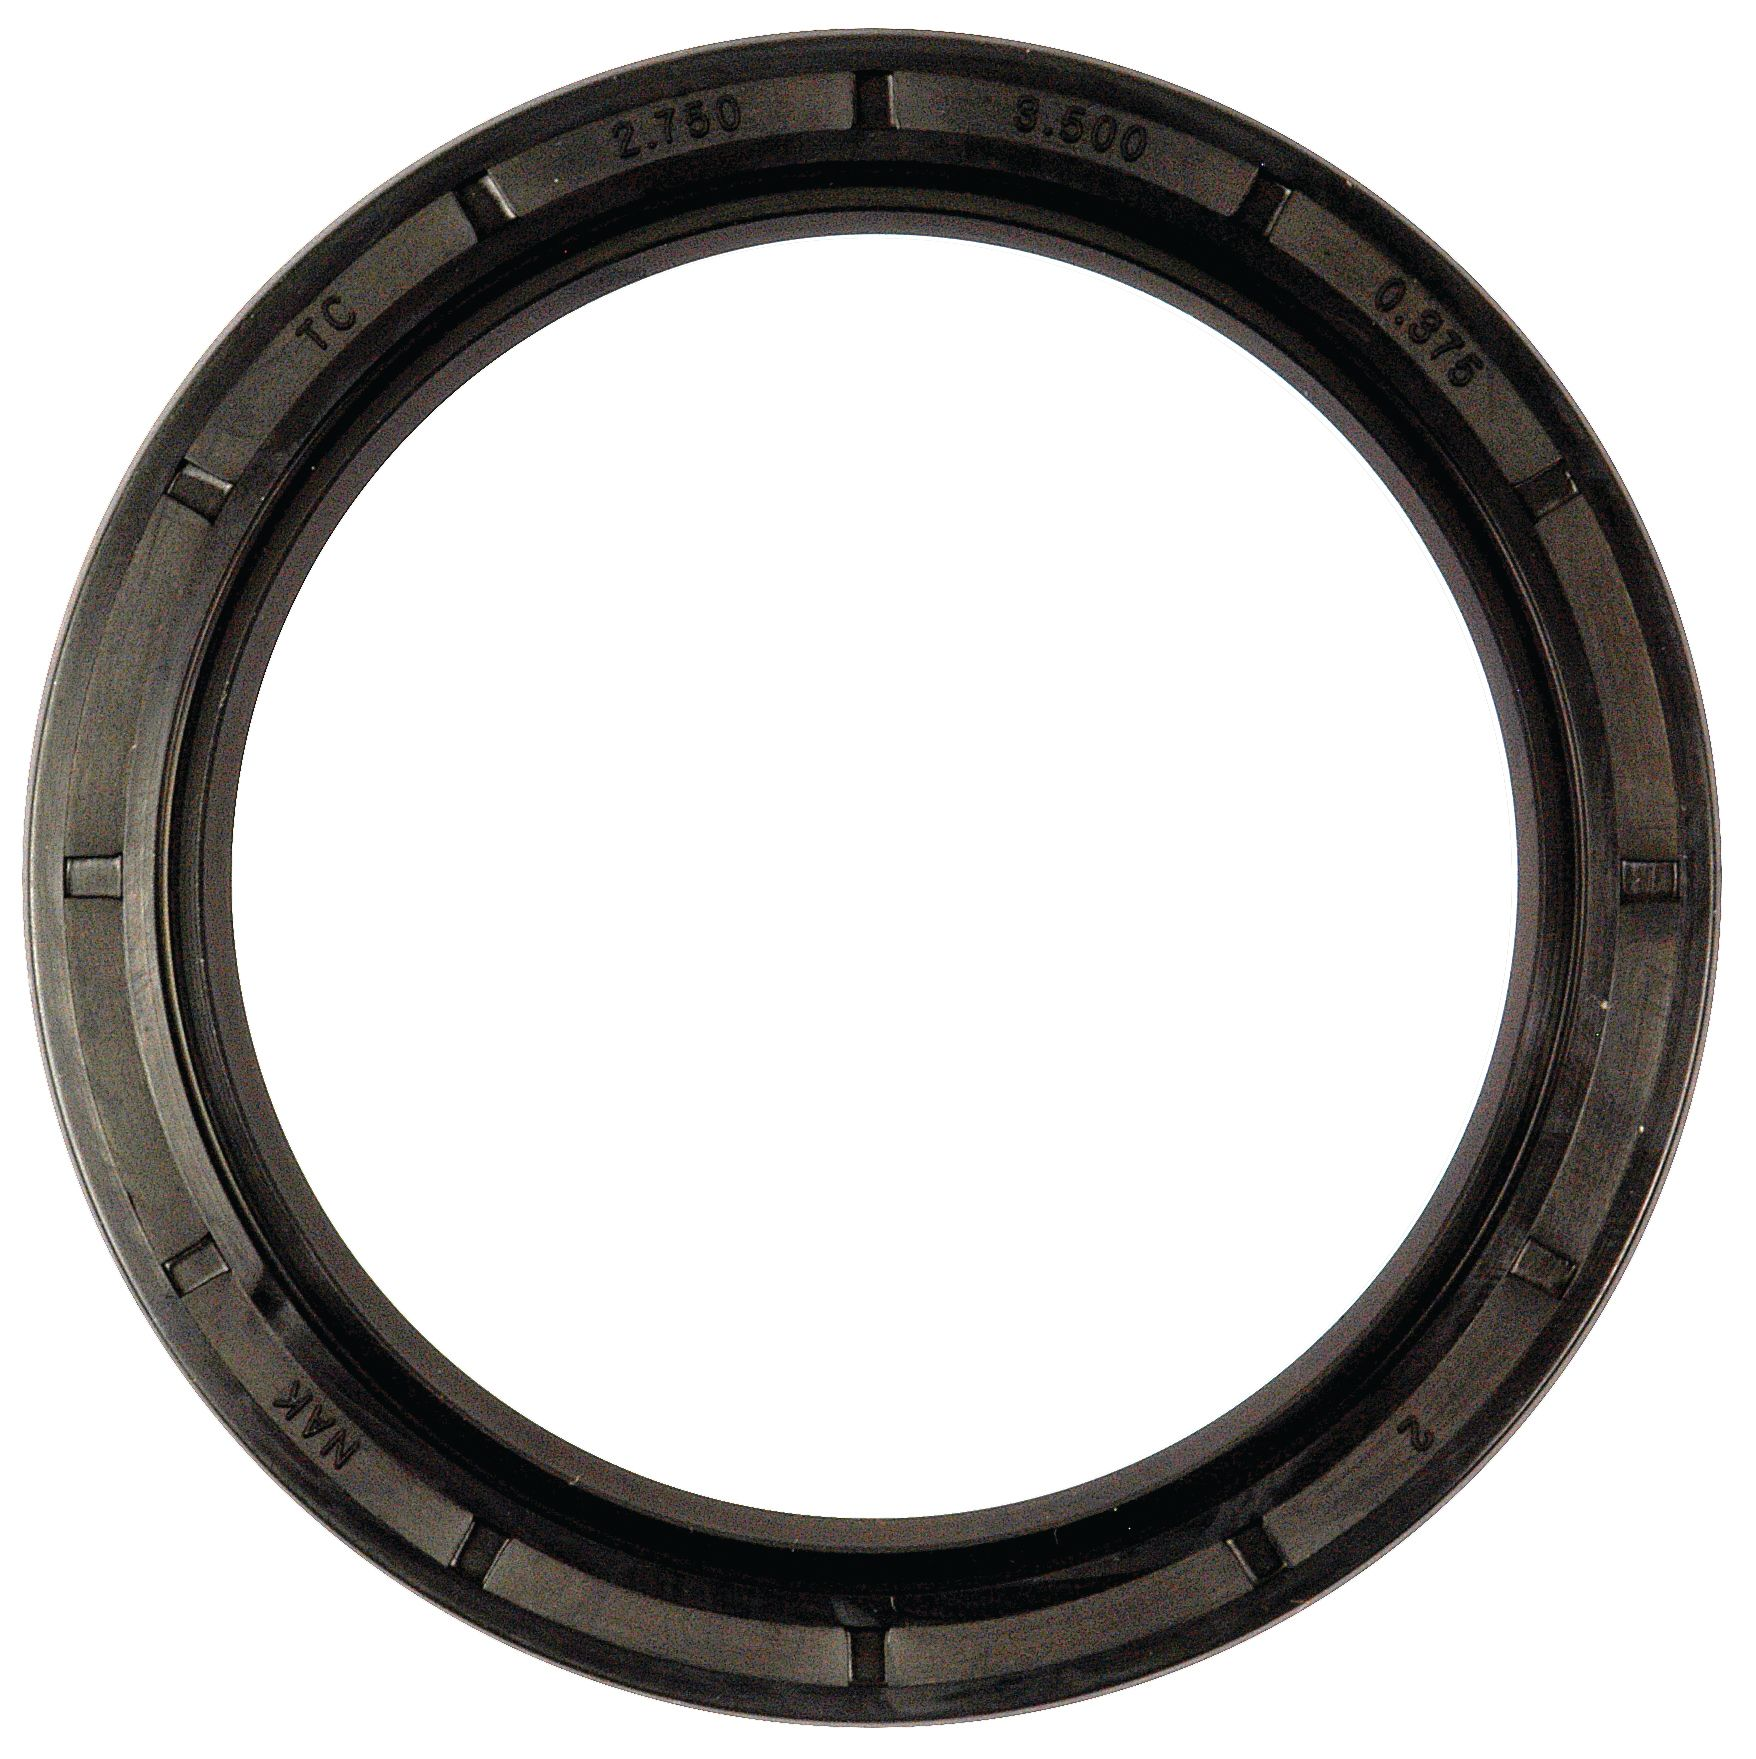 NUFFIELD INNER SEAL 57833